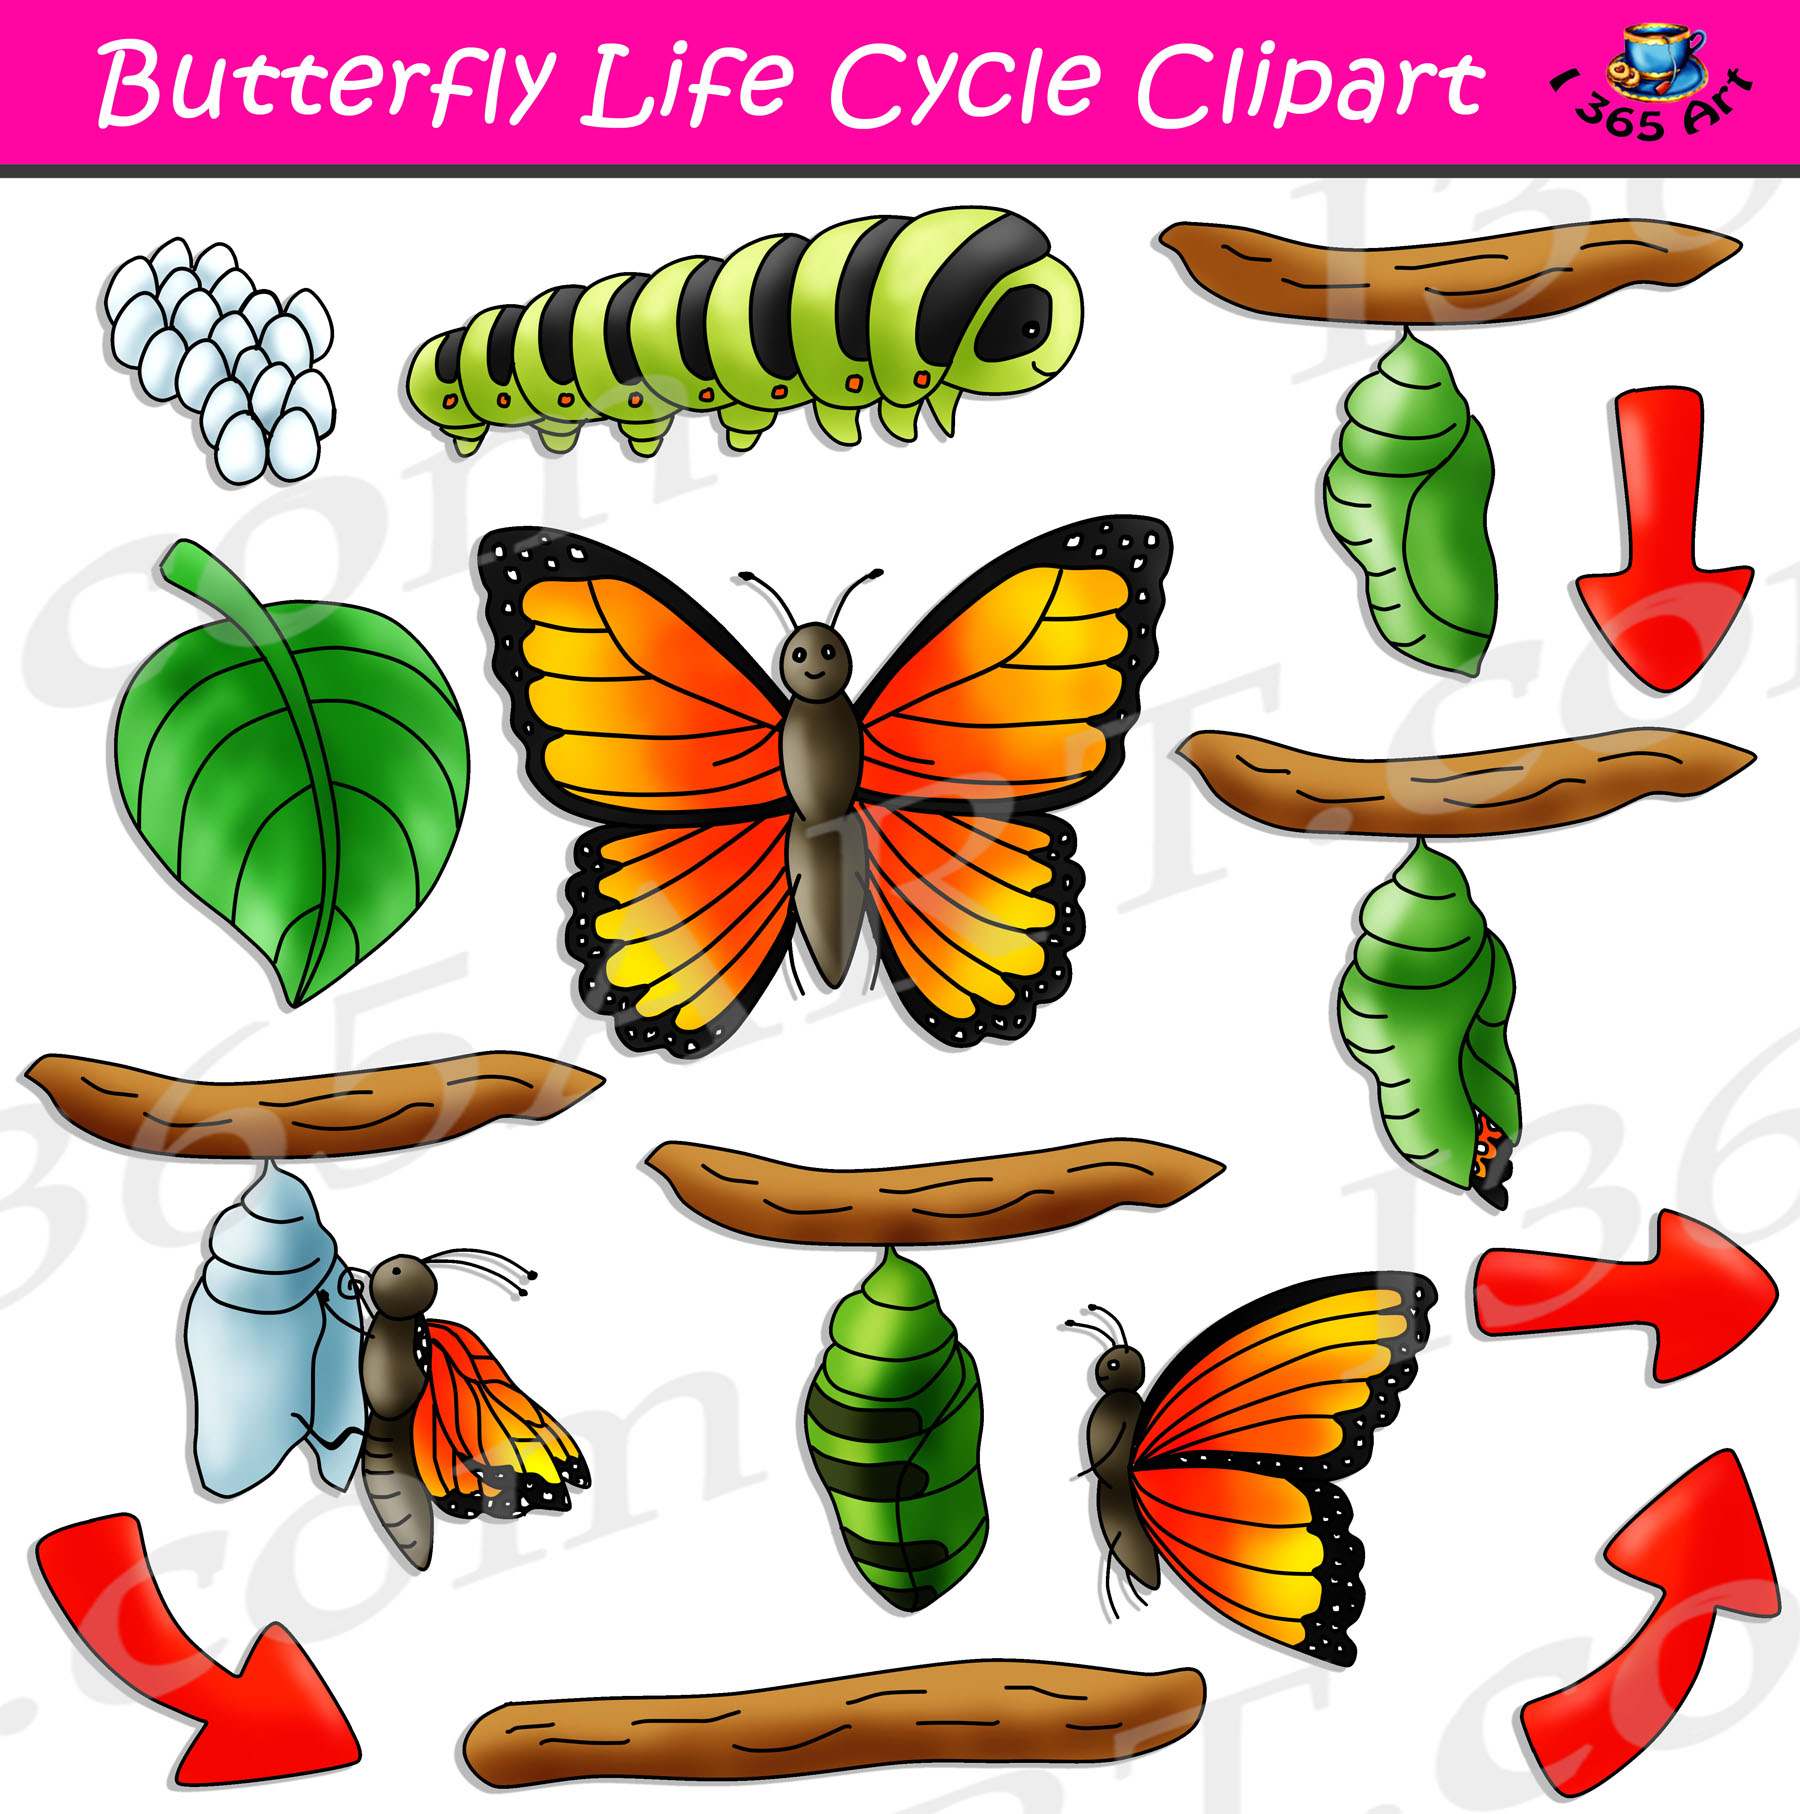 Clipart of life cycle of a butterfly picture royalty free library Butterfly Life Cycle Clipart Bundle picture royalty free library